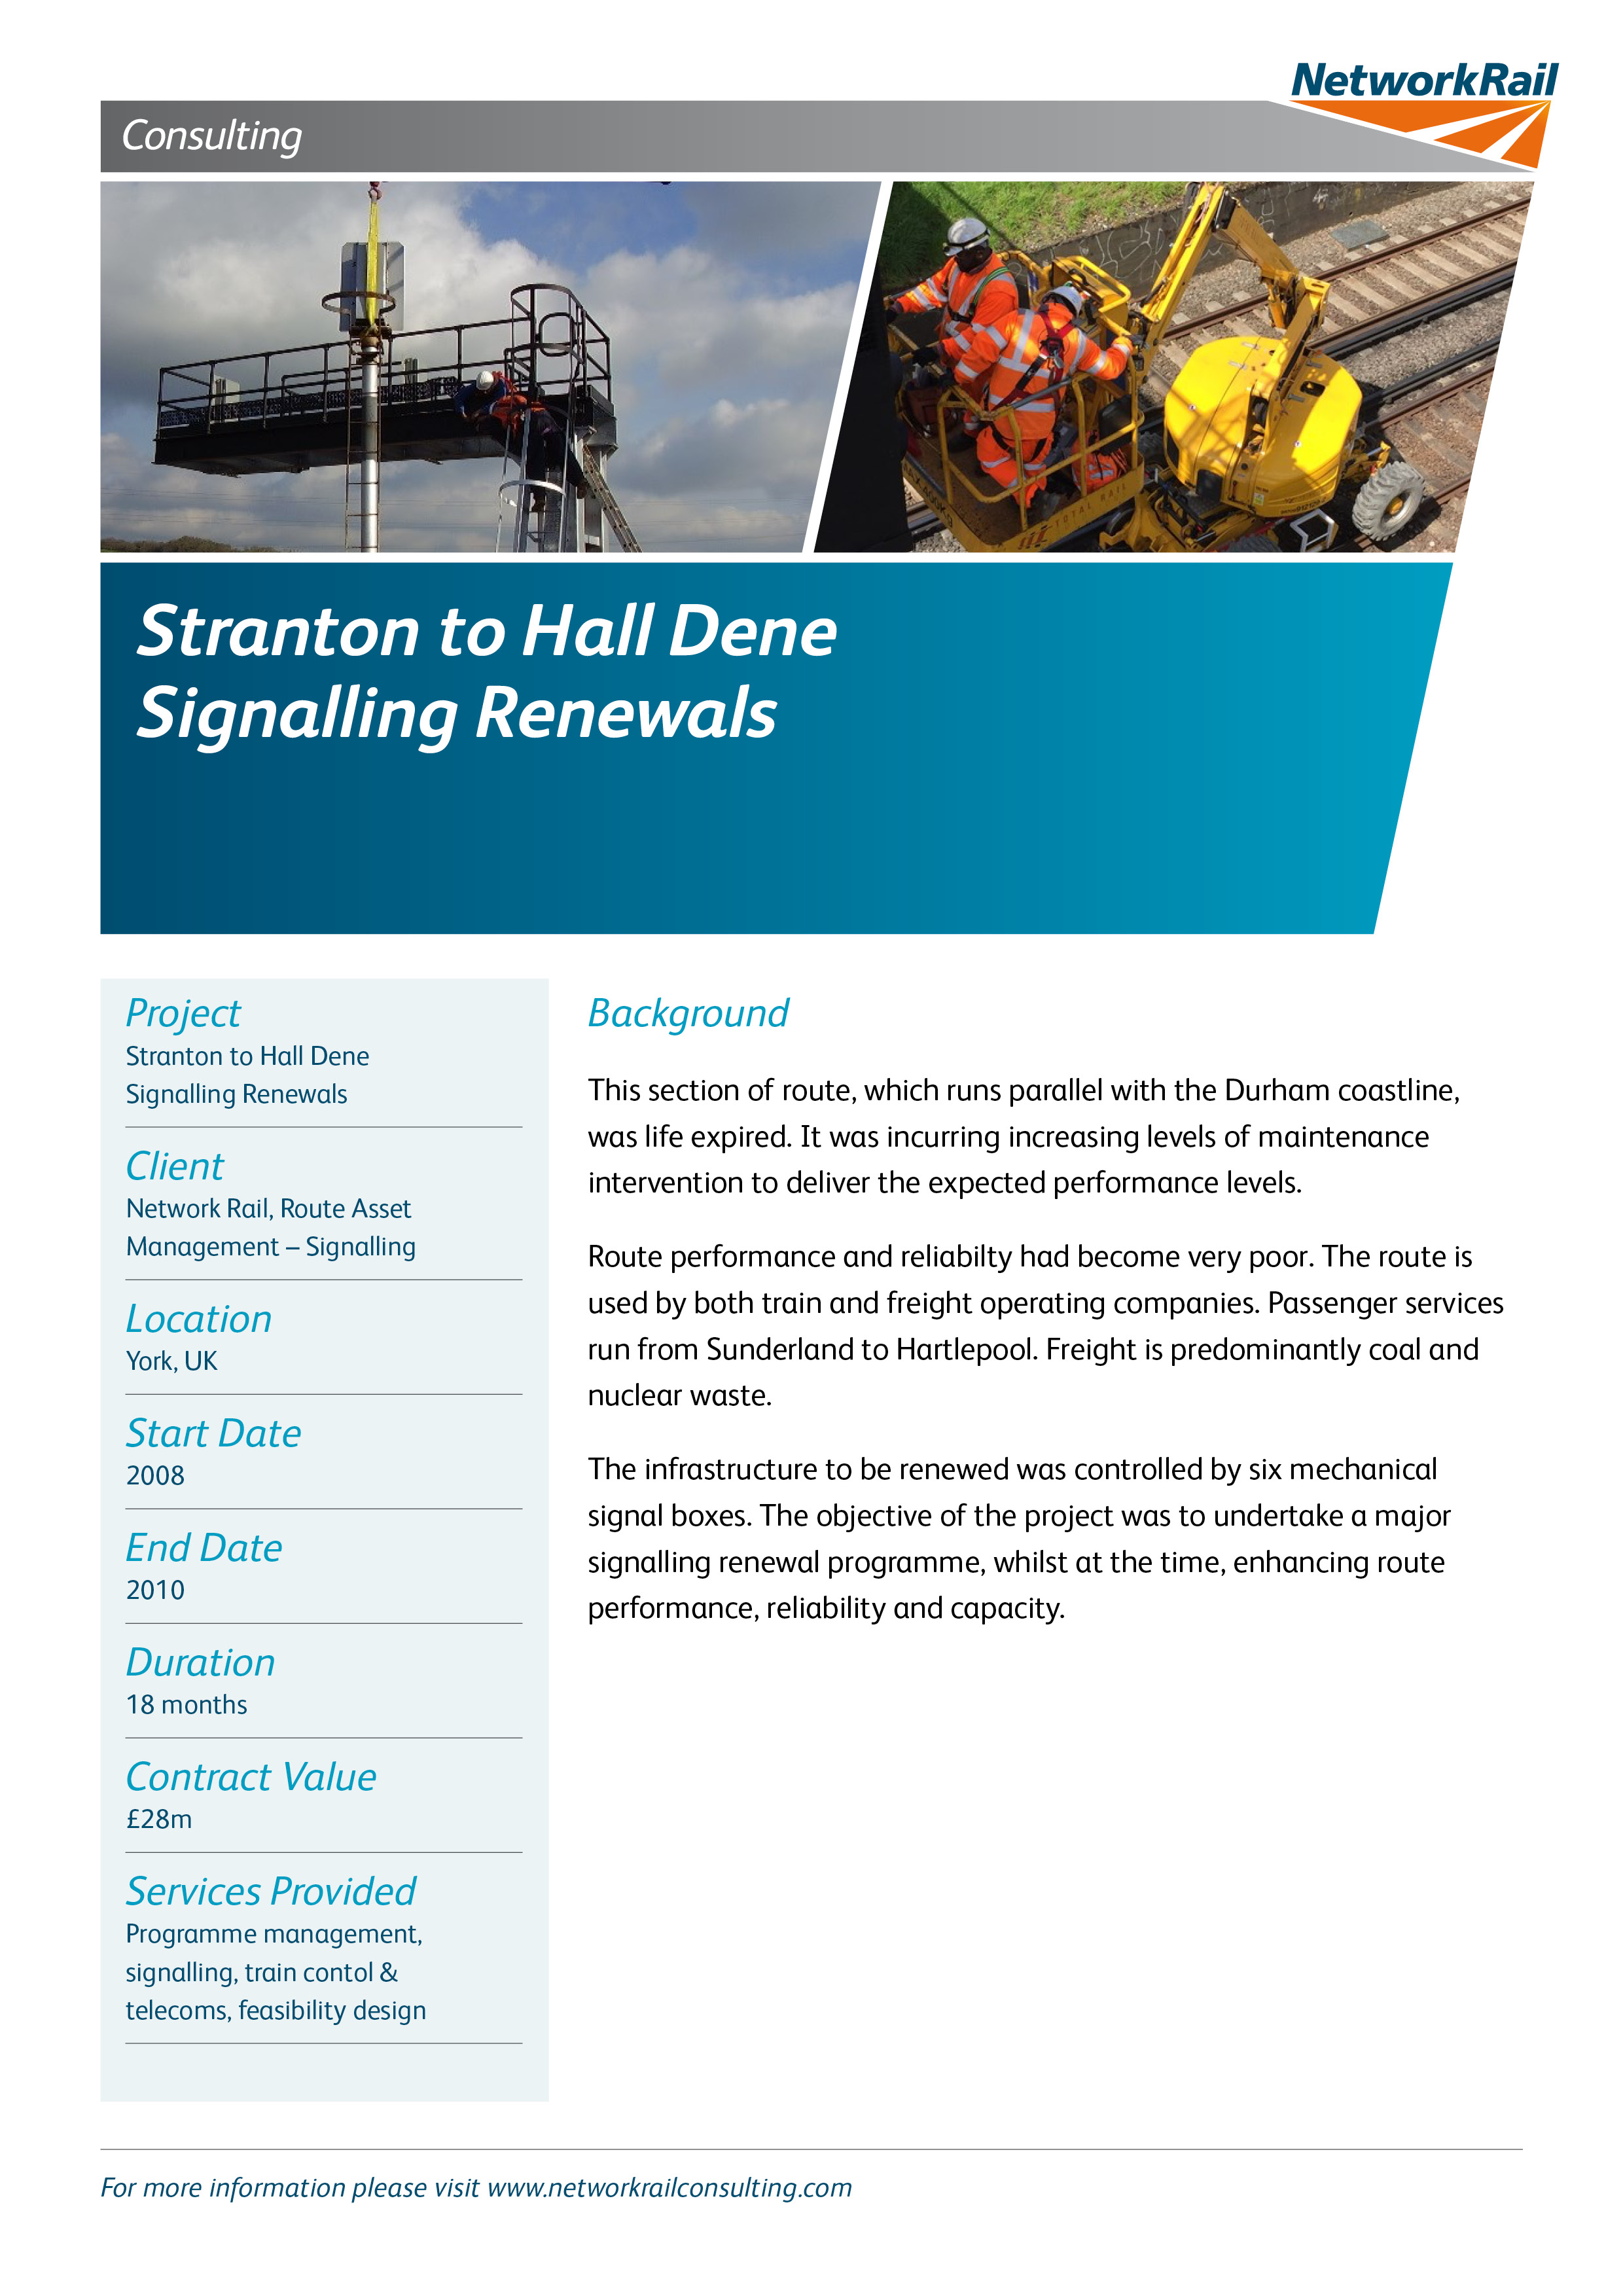 Stranton to Hall Dene Signalling Renewals Approved